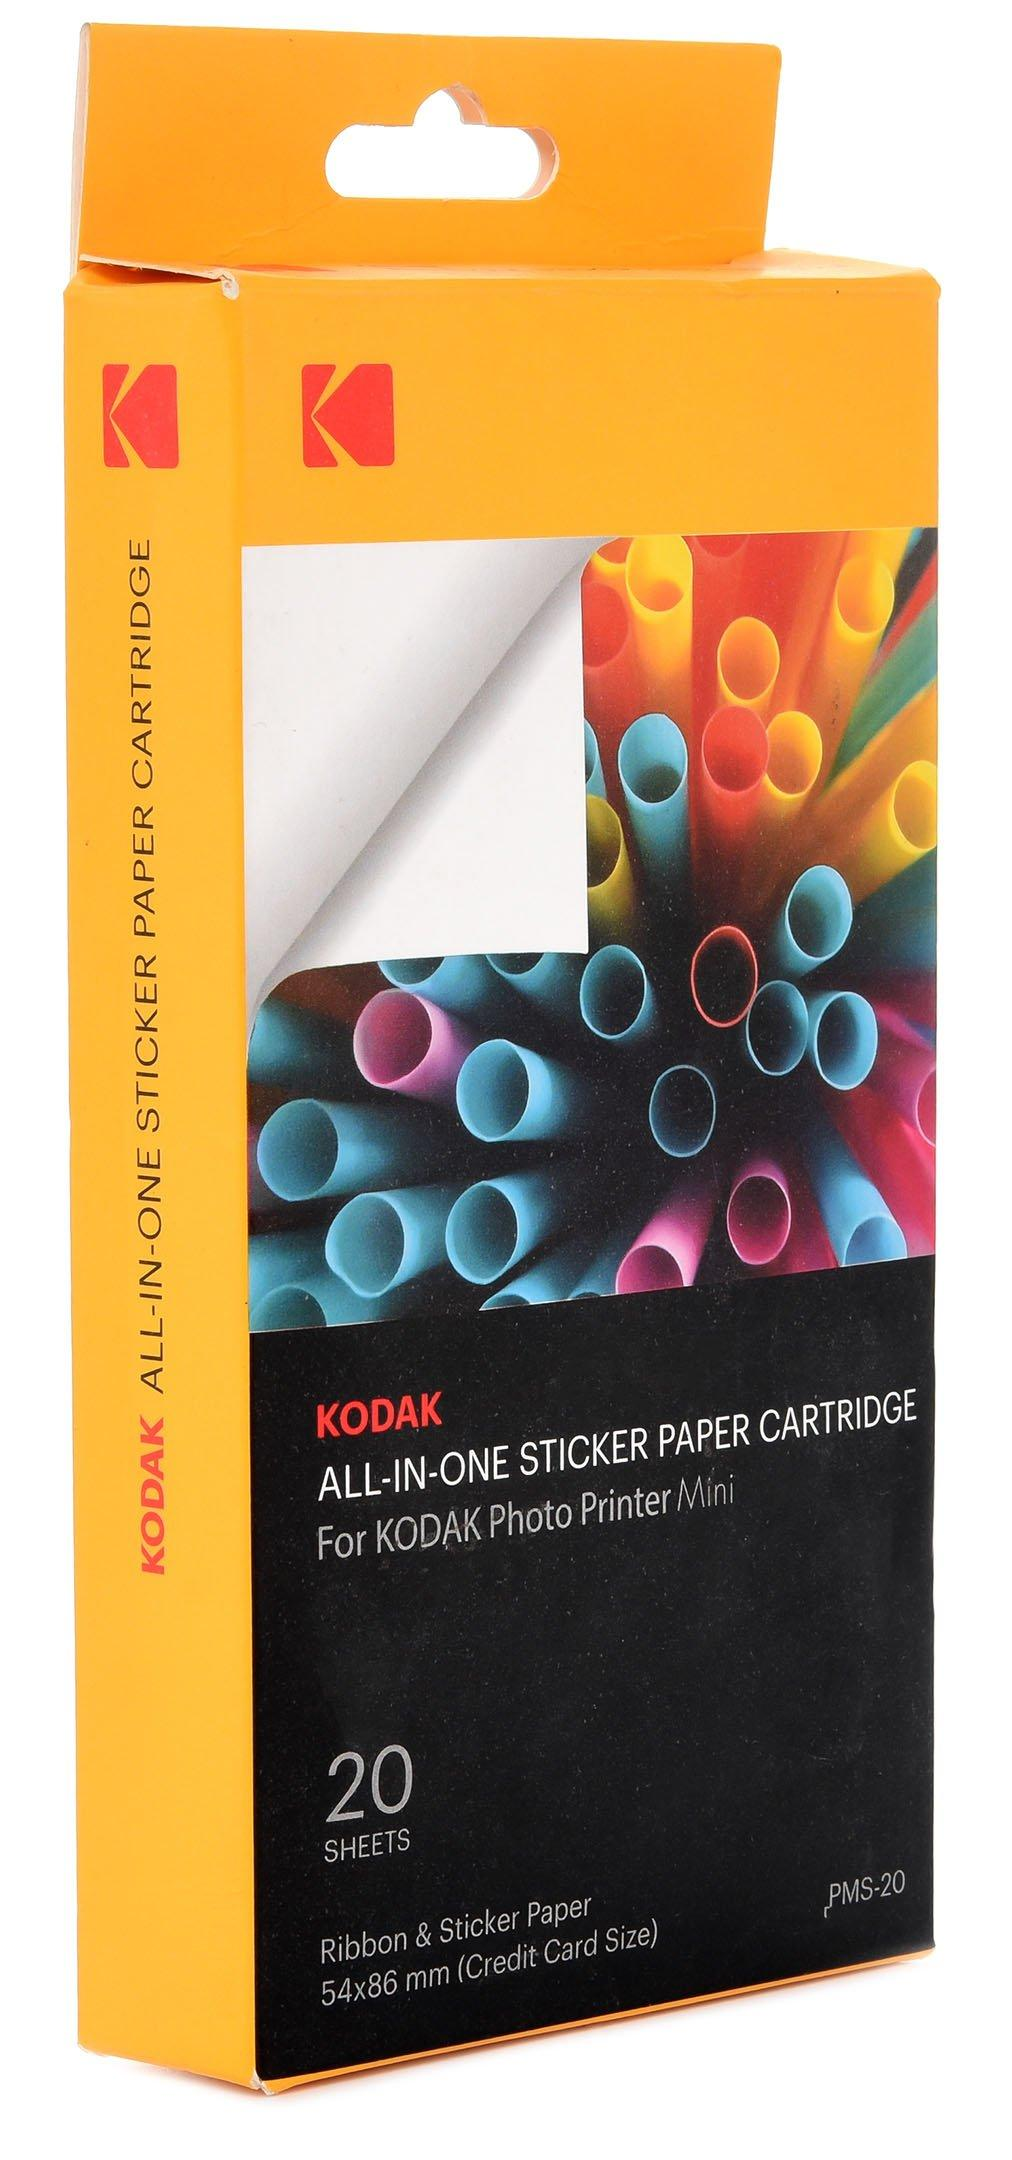 Kodak Mini Photo Printer AIO Cartridge 20 Sheets Pack